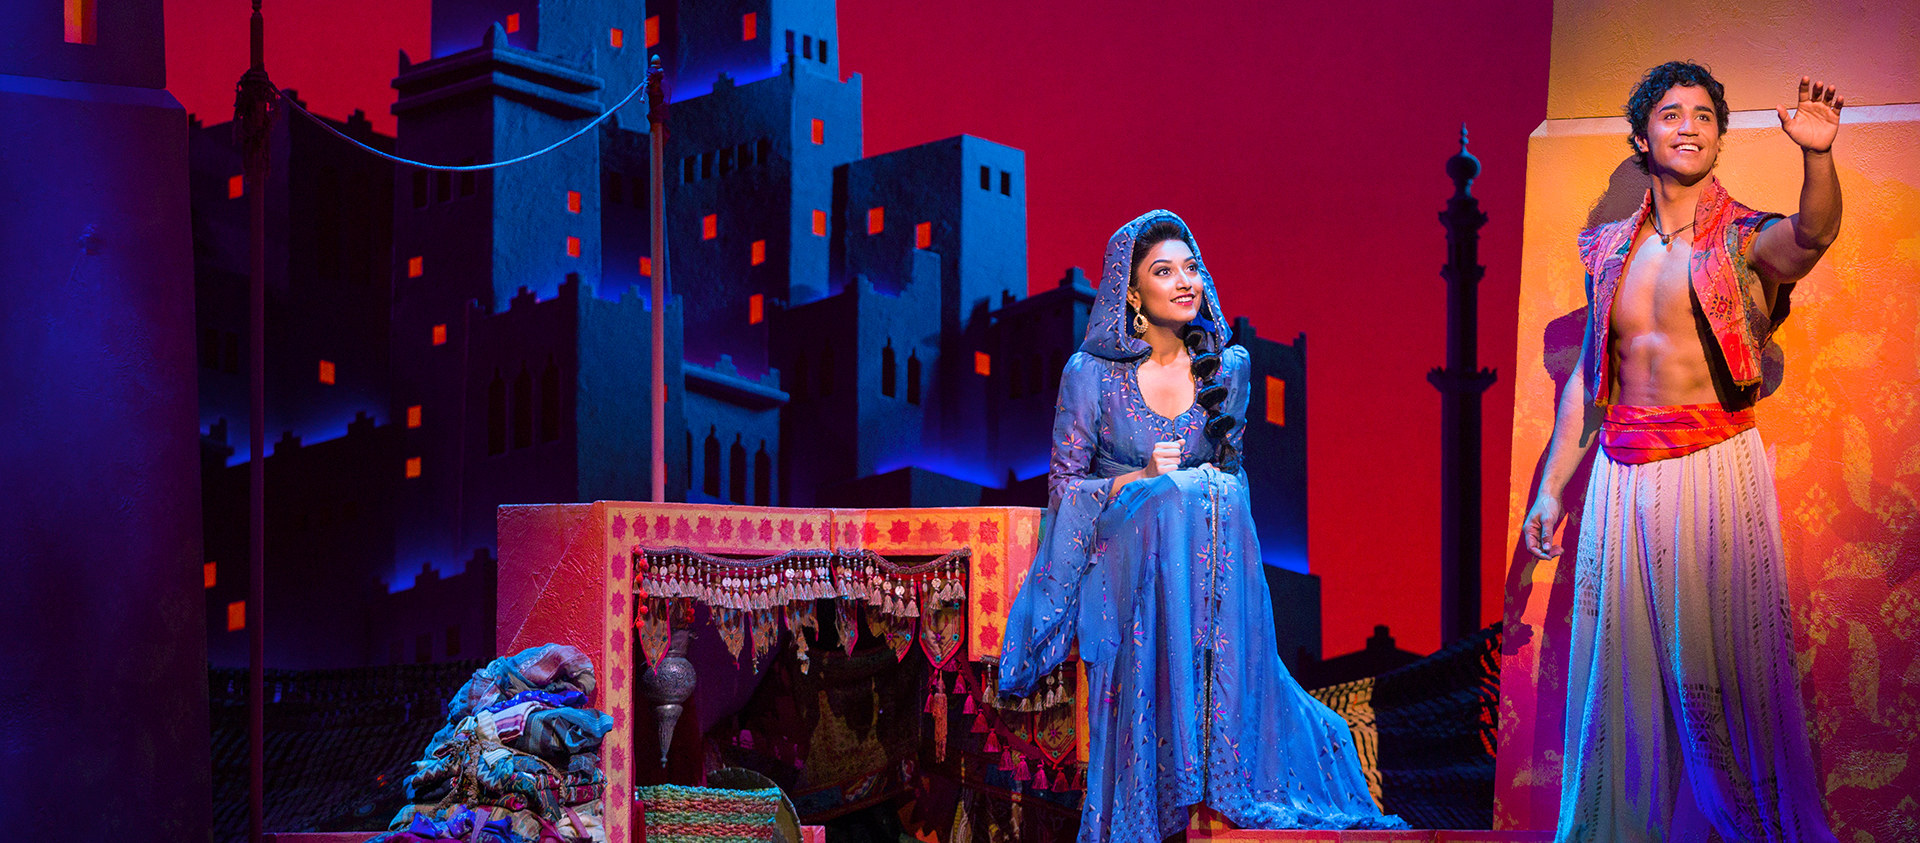 Aladdin Musical Shines and Dazzles on Stage, Literally and Metaphorically - Alvinology